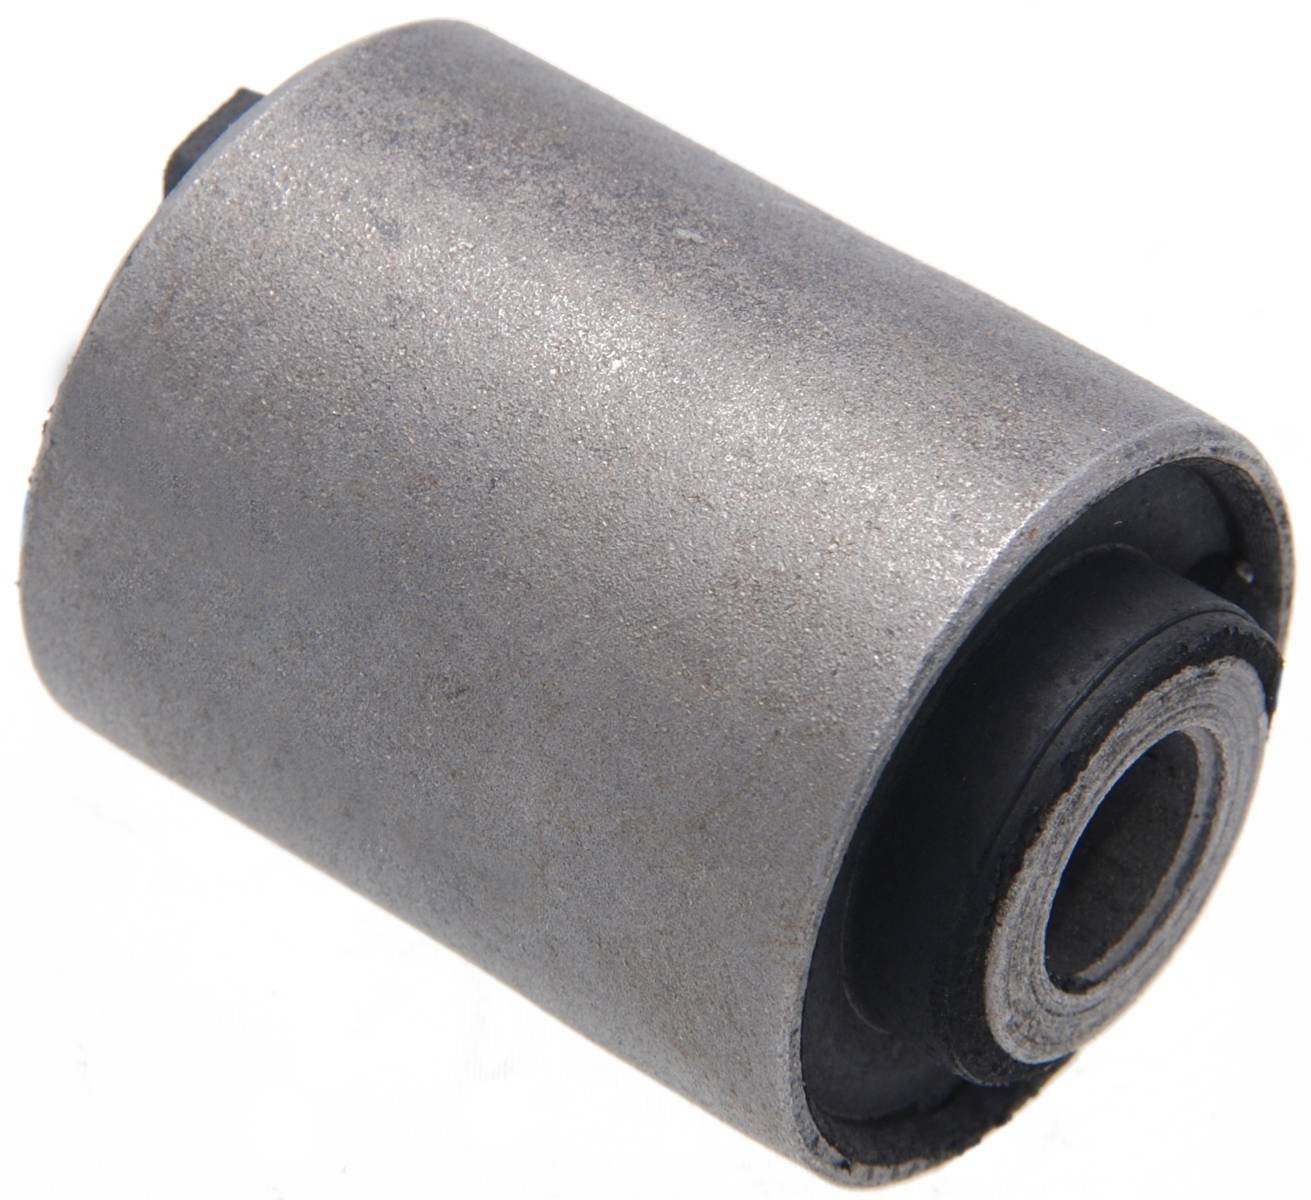 Arm Bushing For Lateral Control Arm FEBEST FDAB-018 OEM 1469125